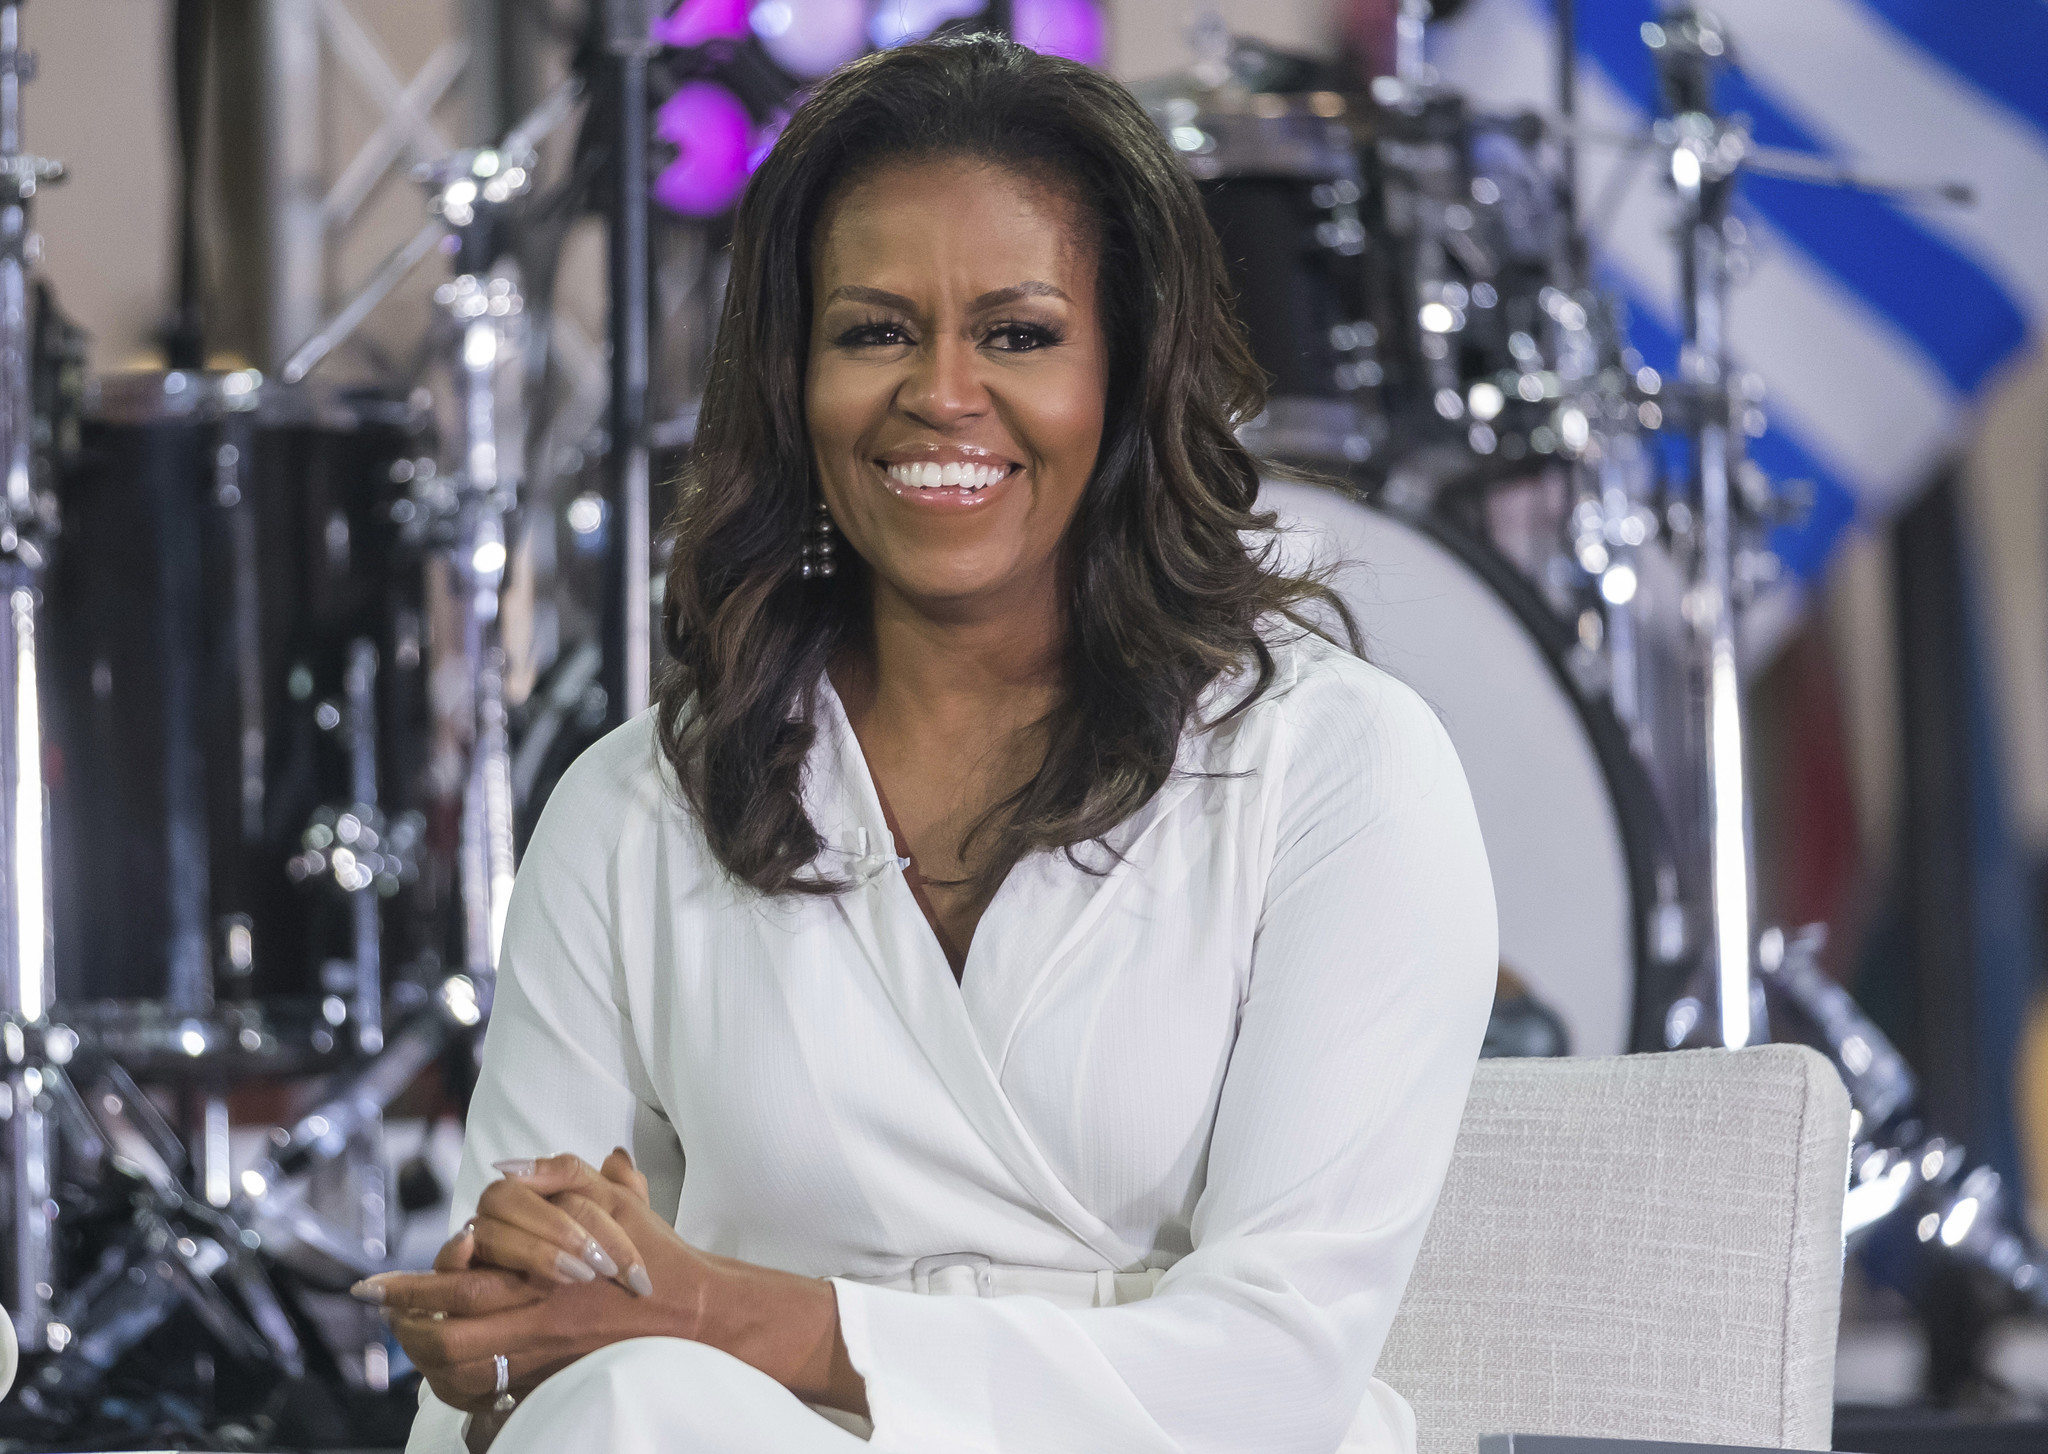 Michelle Obama, Hillary Clinton, Aretha Franklin, RBG, Oprah Winfrey and more named to Time's 100 Women of the Year century list